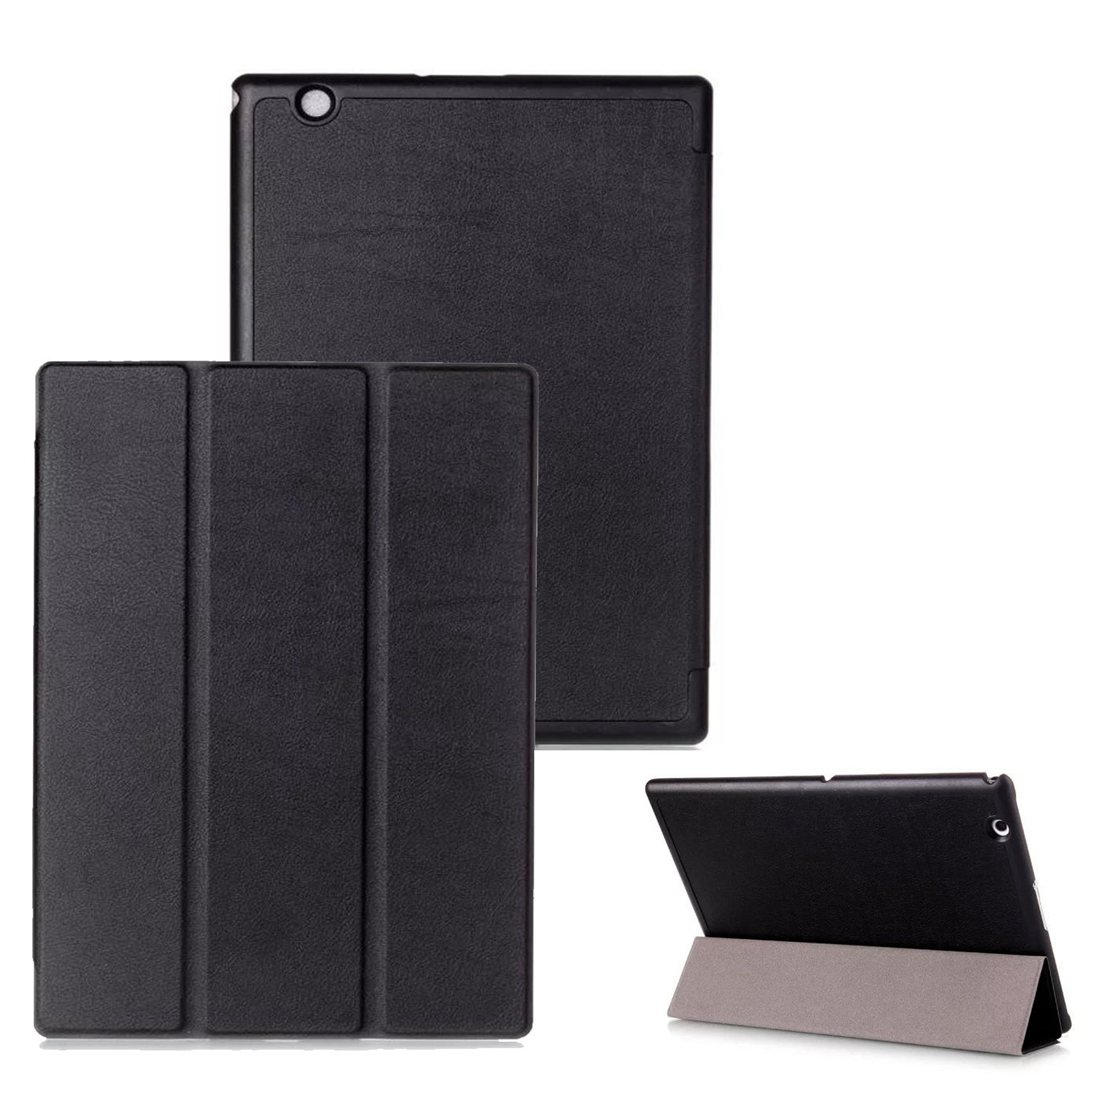 Ultra Slim Lightweight Smart Case Cover for Sony Xperia Z4 Tablet-PC with Auto Sleep/Wake Function (For Sony Xperia Z4 Tablet)